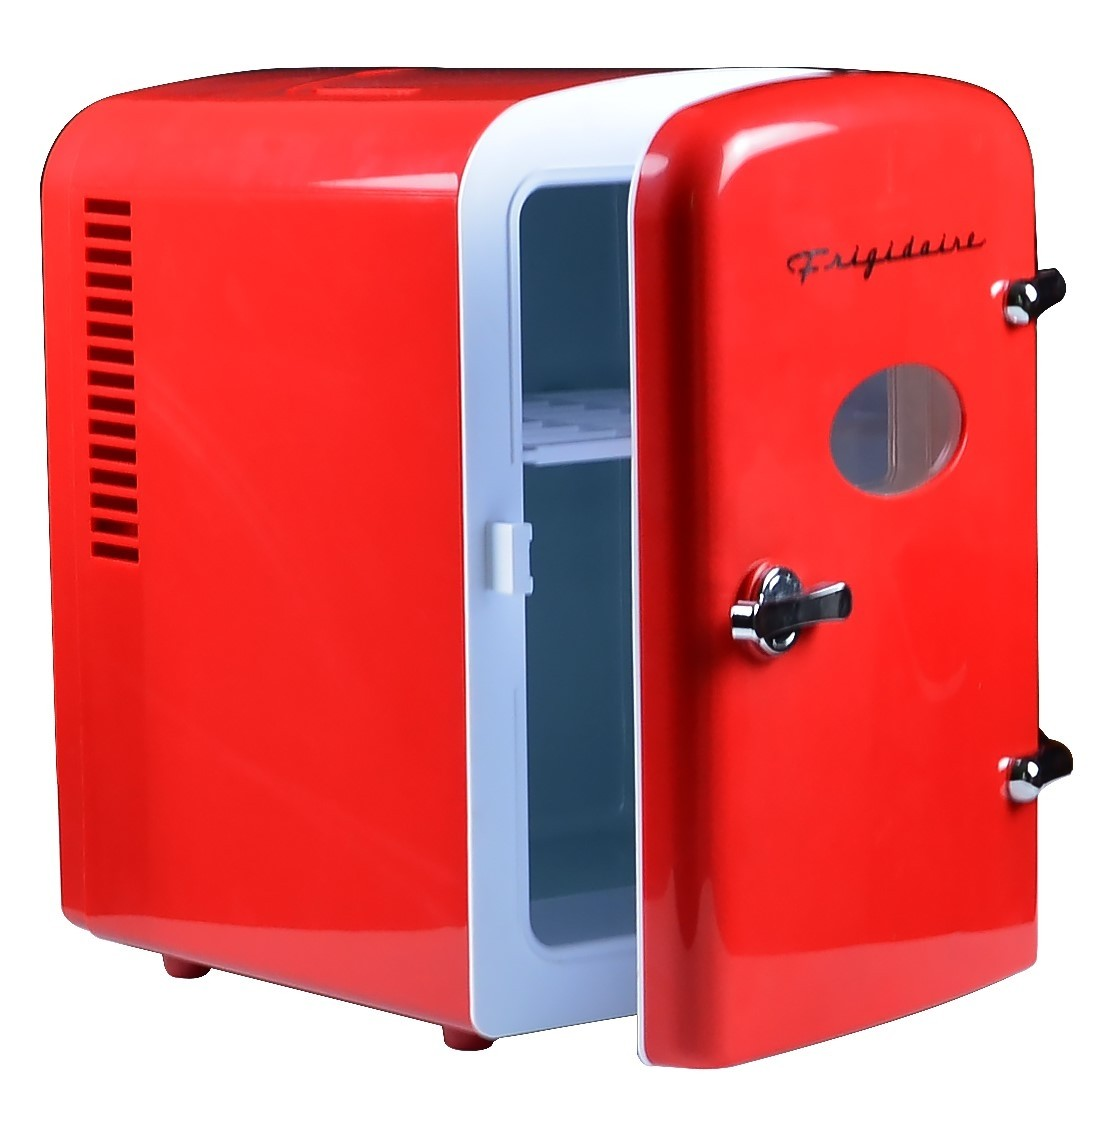 Includes Plugs for Home Outlet /& 12V Car Charger-Red Frigidaire EFMIS129 Mini Portable Compact Personal Fridge Cools /& Heats 4 Liter Capacity Chills Six 12 oz Cans Renewed 100/% Freon-Free /& Eco Friendly